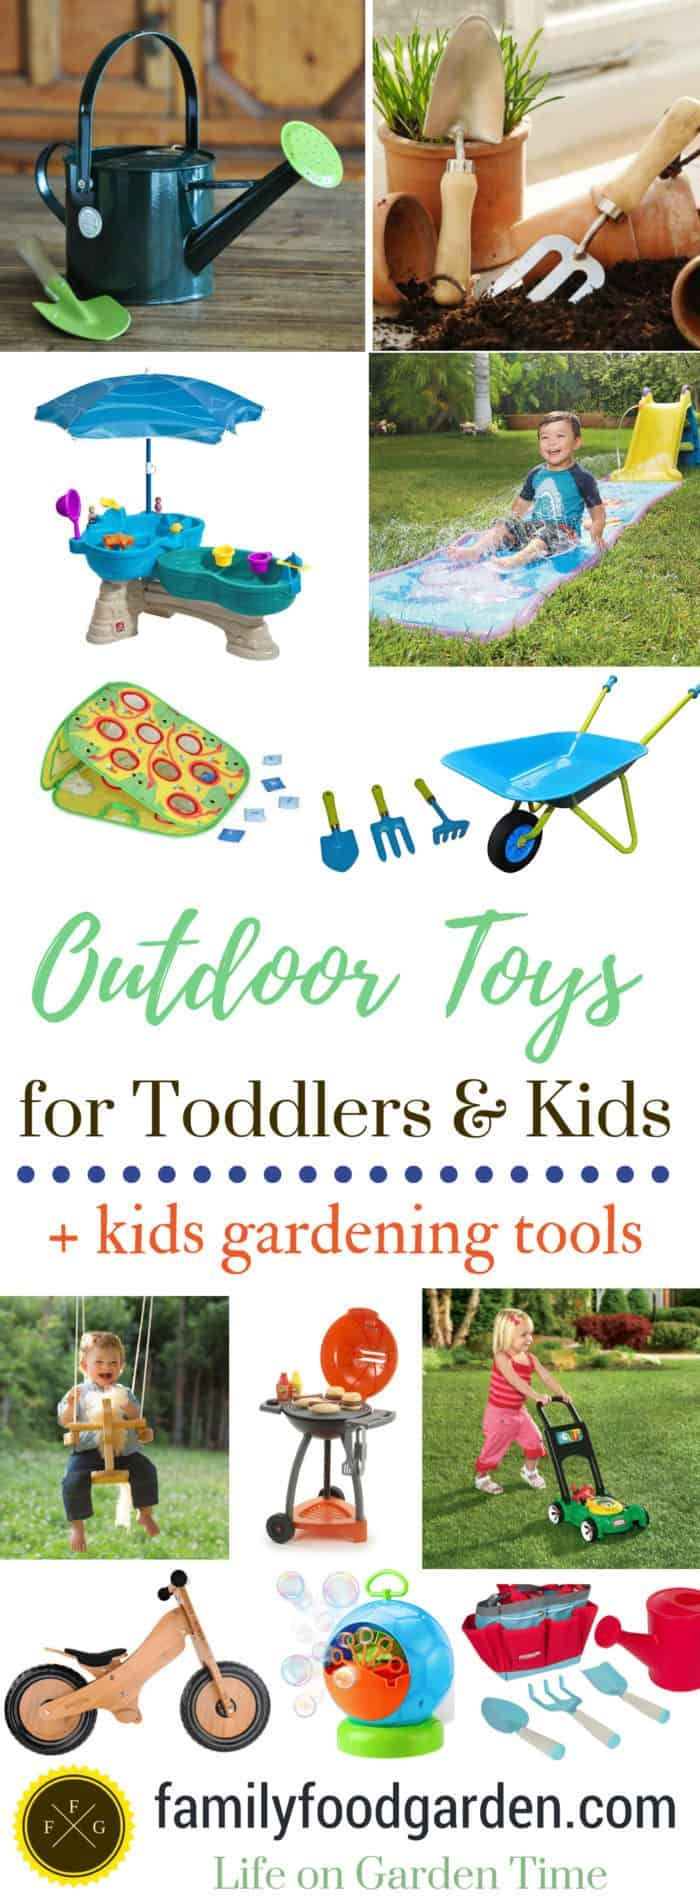 Gardening And Outdoor Toys For Toddlers And Kids Family Food Garden Recepten Hacks